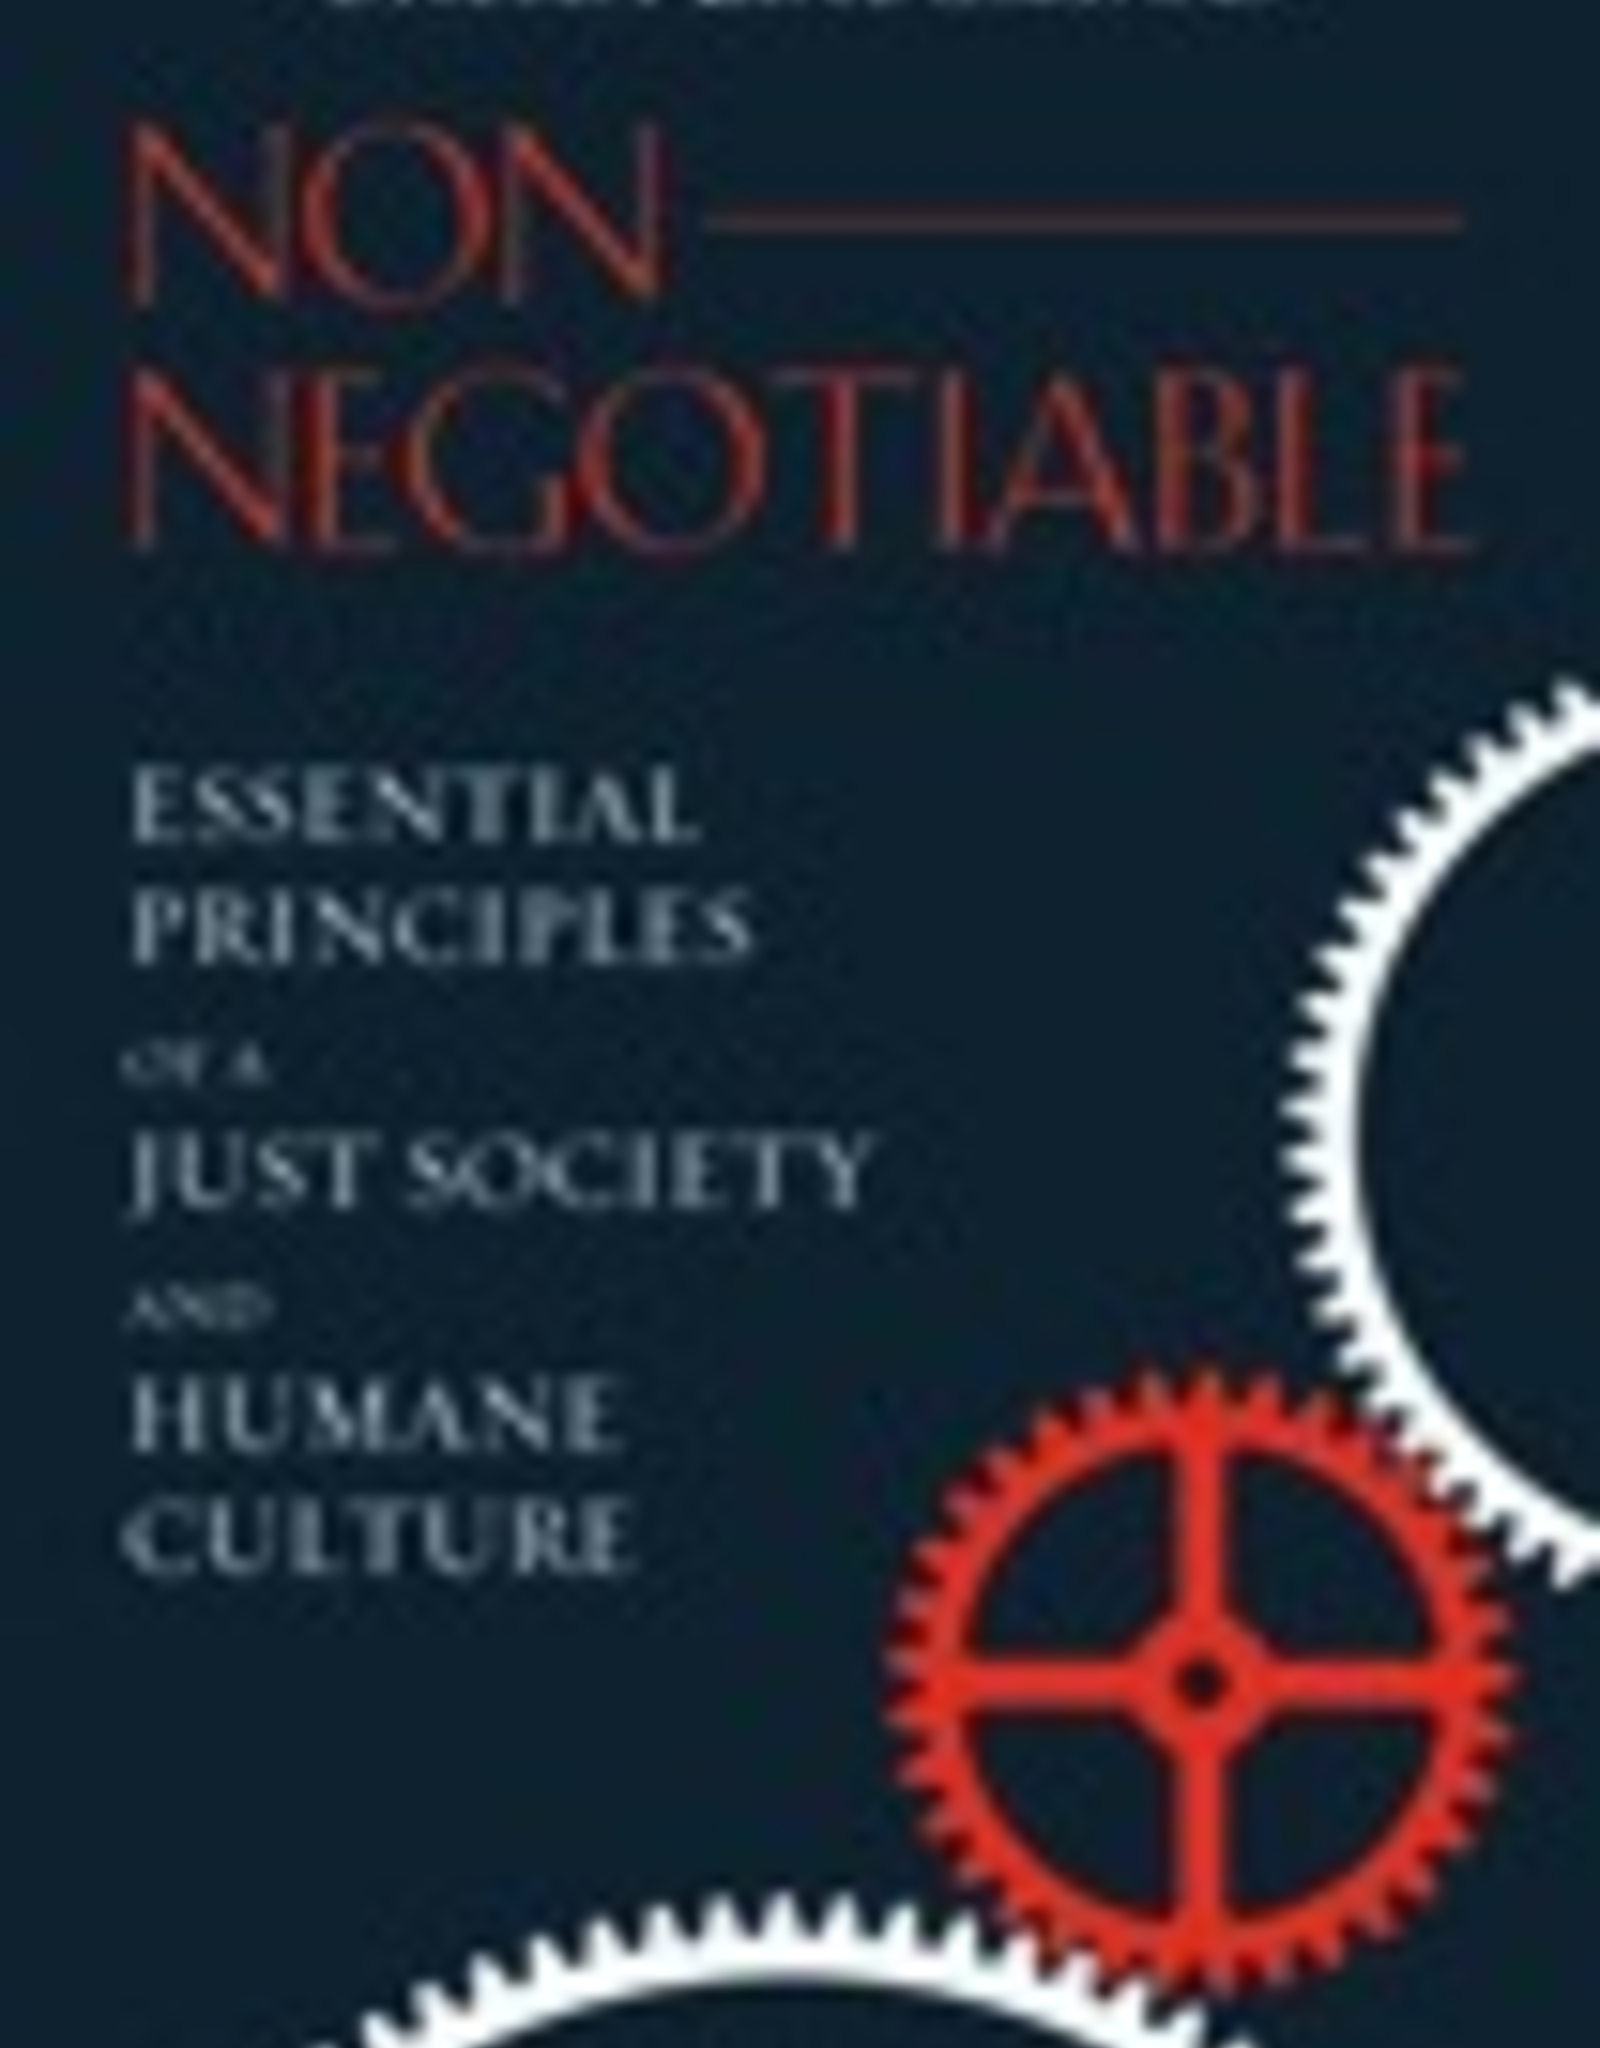 Ignatius Press Non-Negotiable:  Essential Principals of a Just Society and Humane Culture, by Sheila Liaugminas (hardcover)